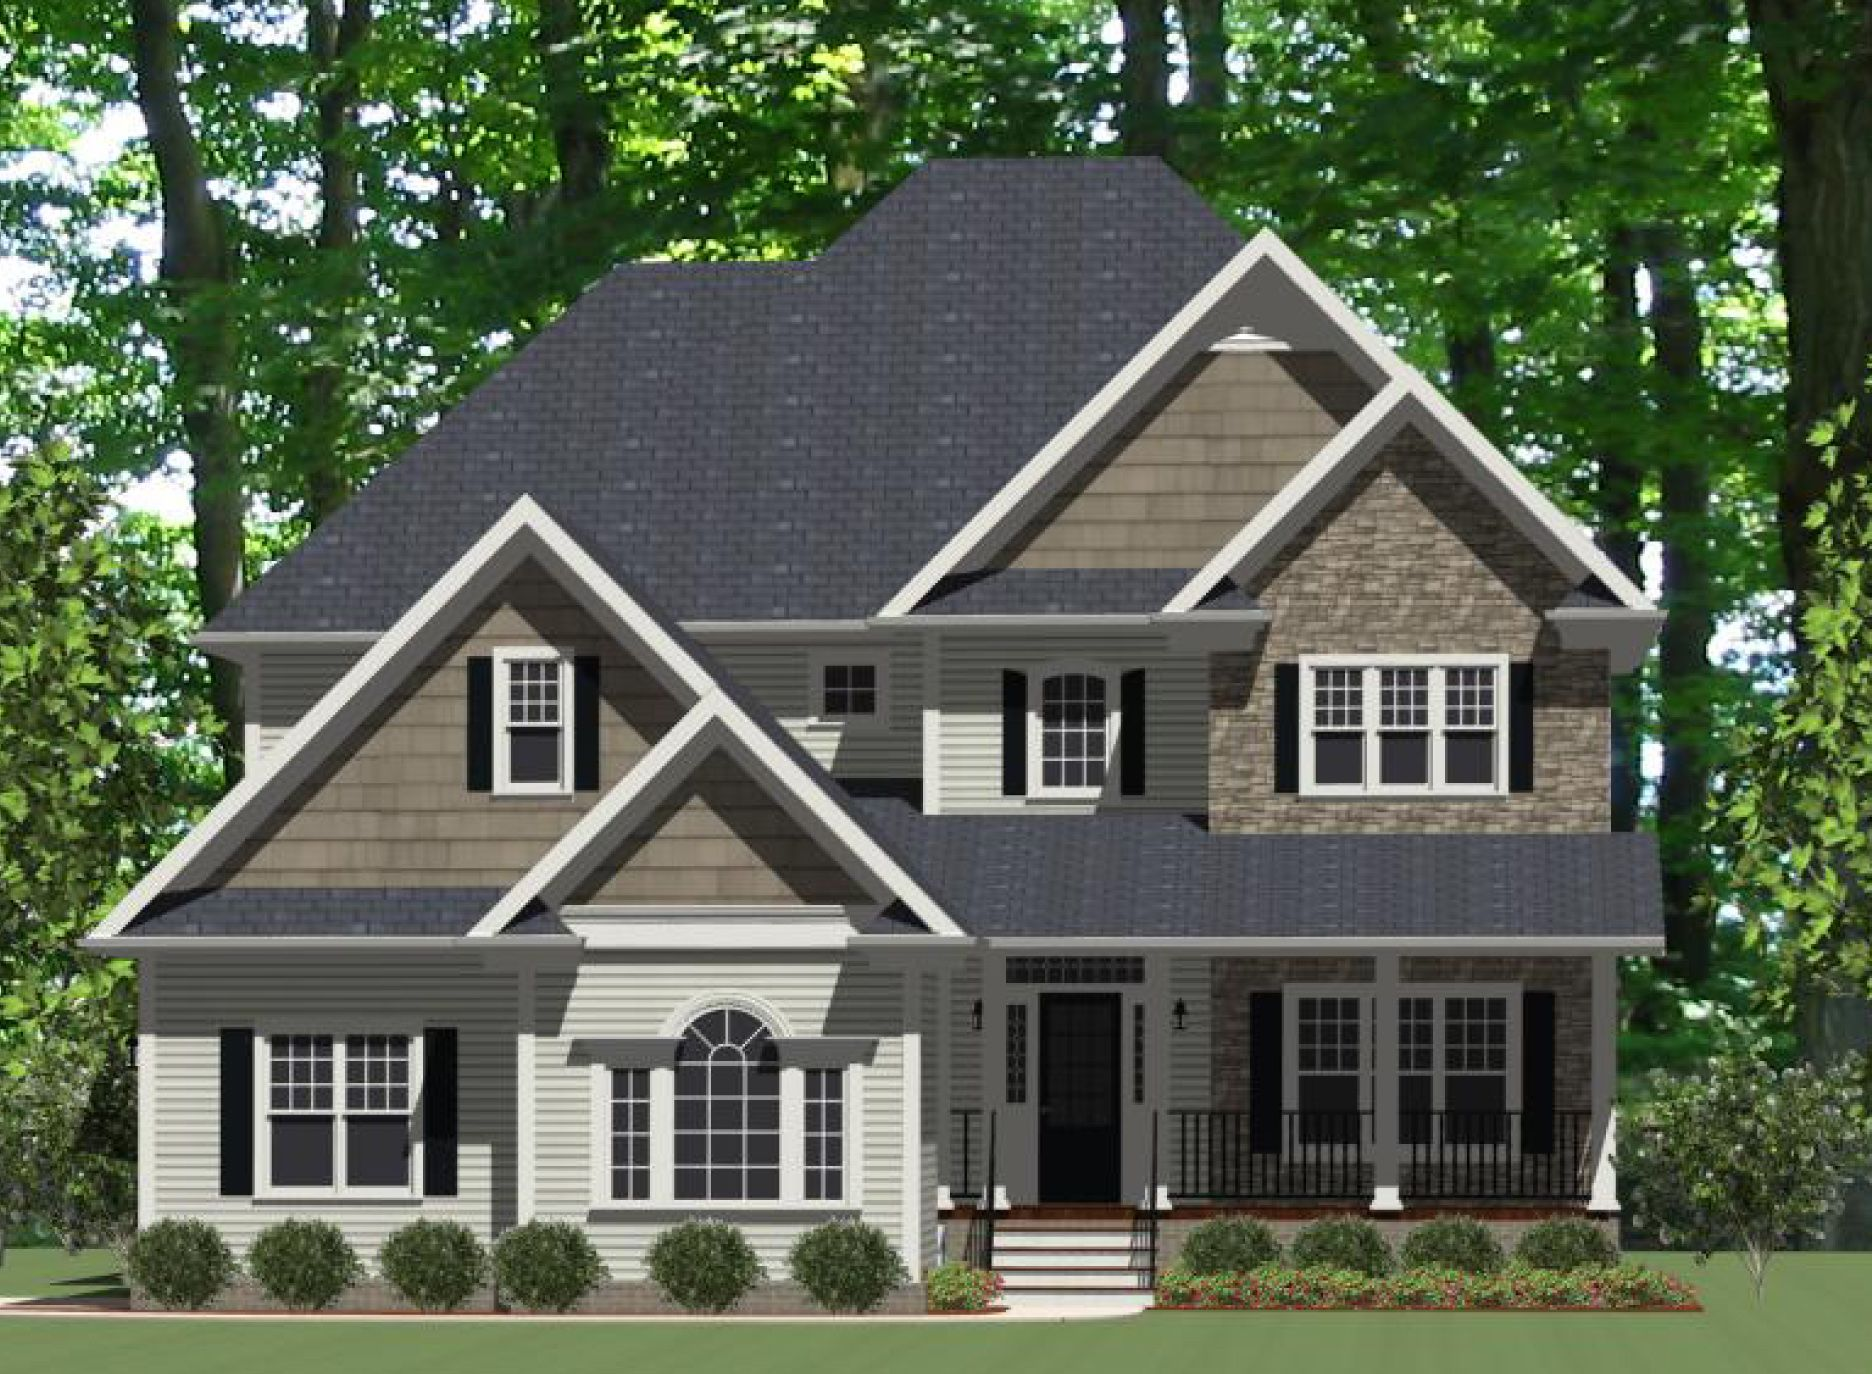 Marvelous Curb Appeal - 46223LA   Traditional, Narrow Lot, 1st Floor Master Suite, Bonus Room, Butler Walk-in Pantry, CAD Available, Den-Office-Library-Study, PDF, Corner Lot   Architectural Designs